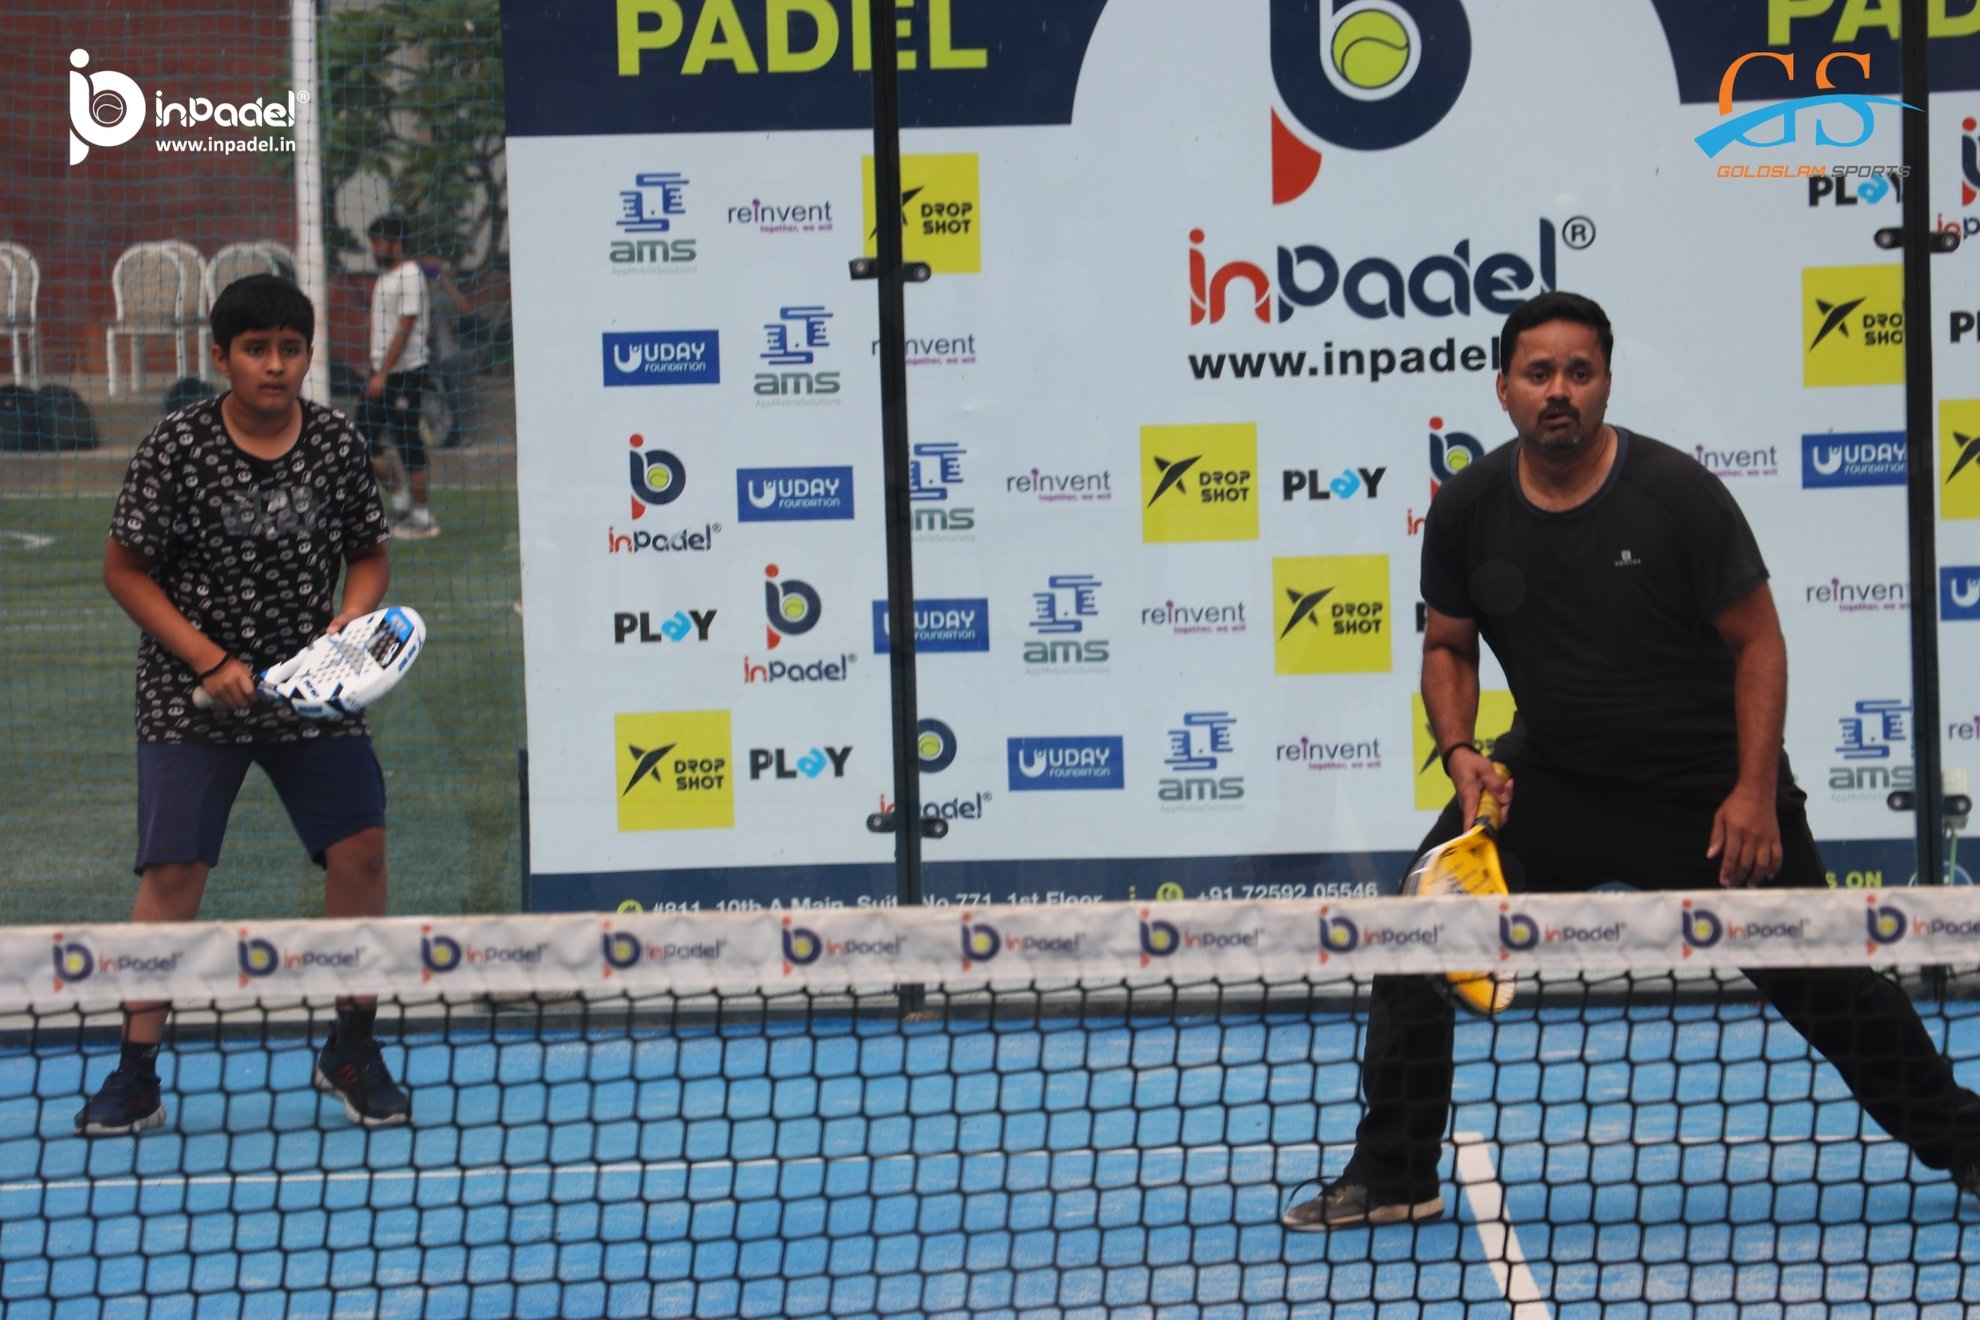 InPadel Corporate Website by GoldSlam Sports (7)